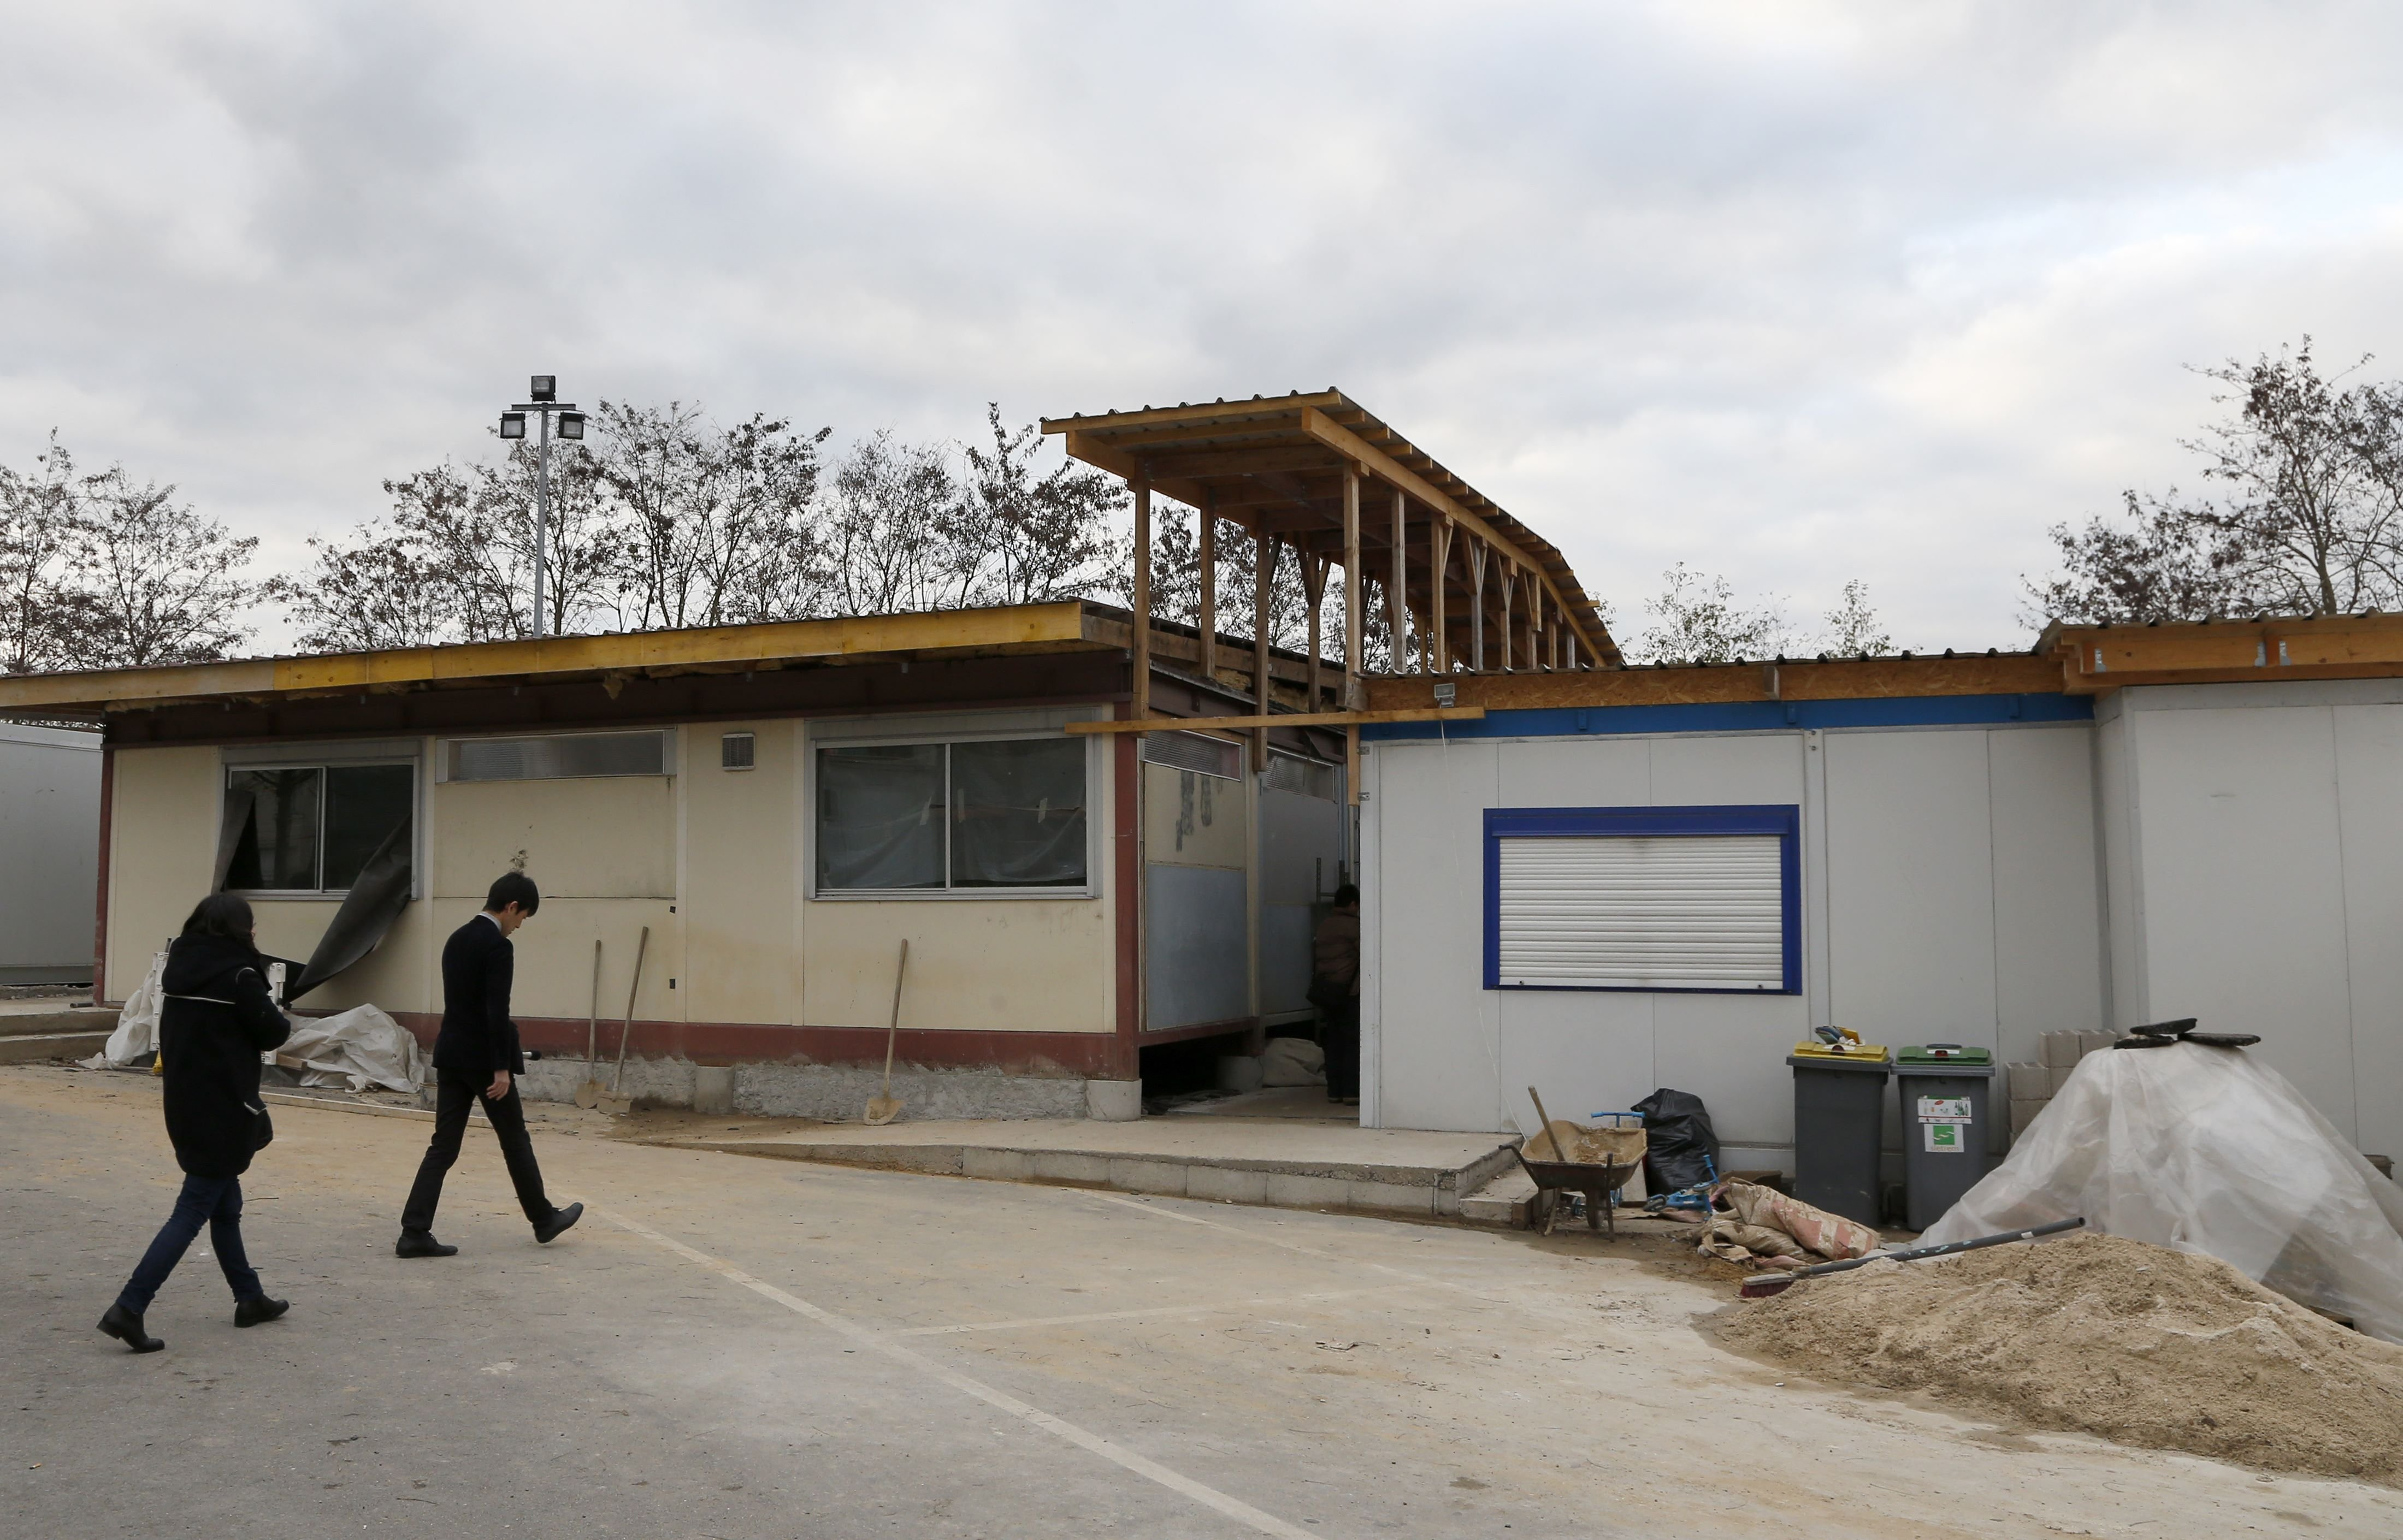 The Mosque of Lagny-sur-Marne has been recently closed as a result of the introduction of a state of emergency, in an eastern Paris suburb on Dec. 2, 2015.